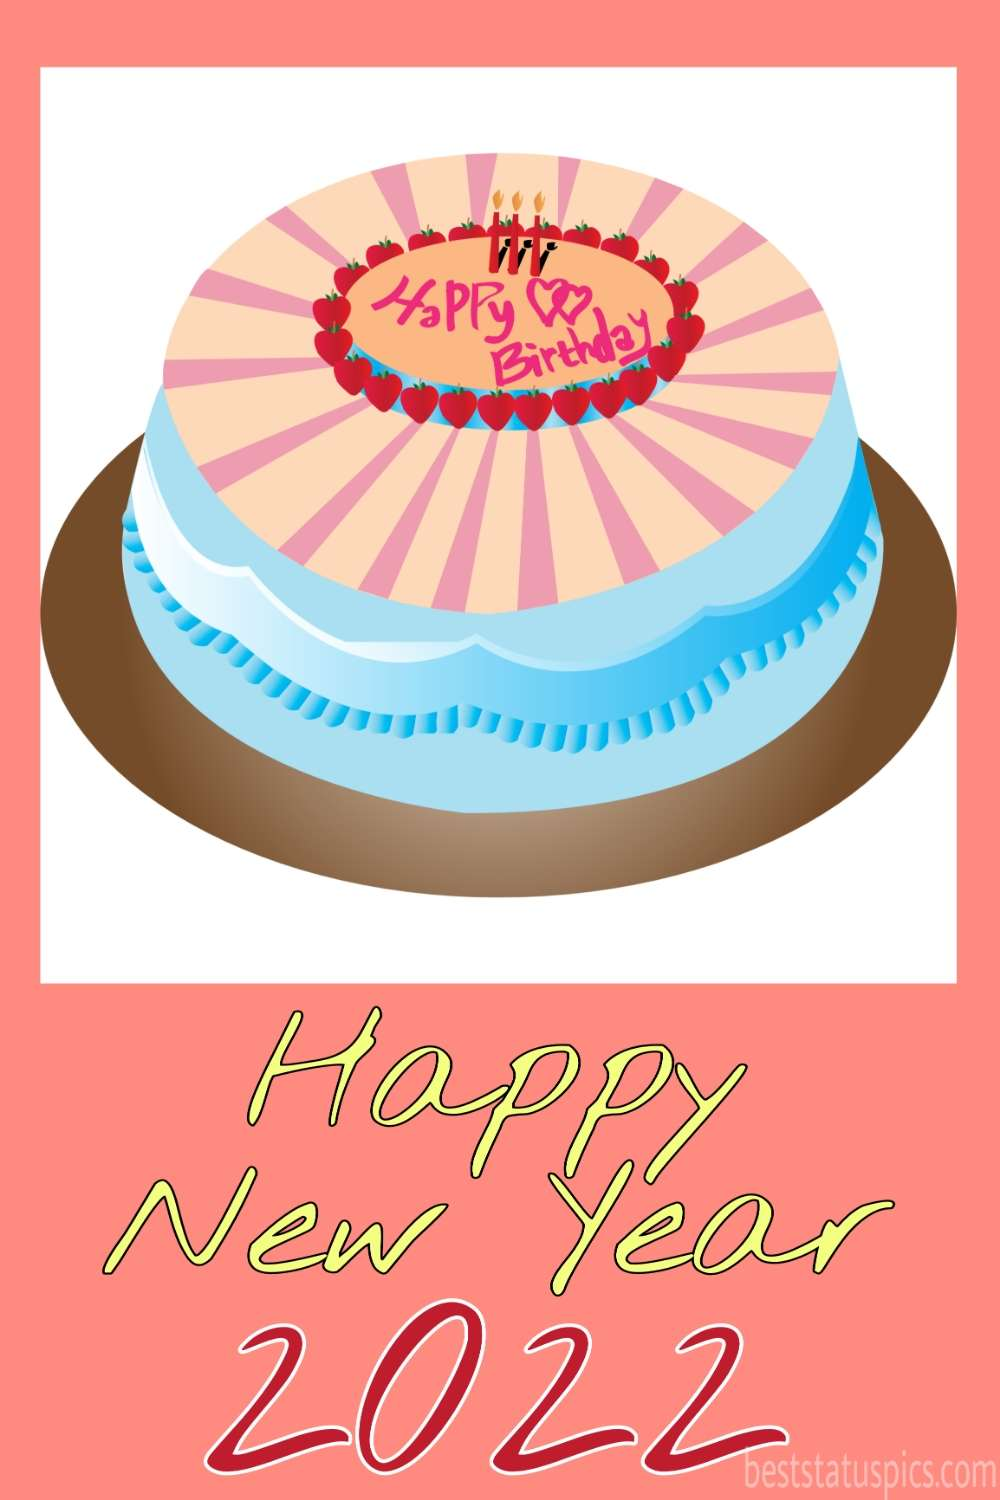 Happy Birthday and Happy new year 2022 greeting cards with cake for Pinterest